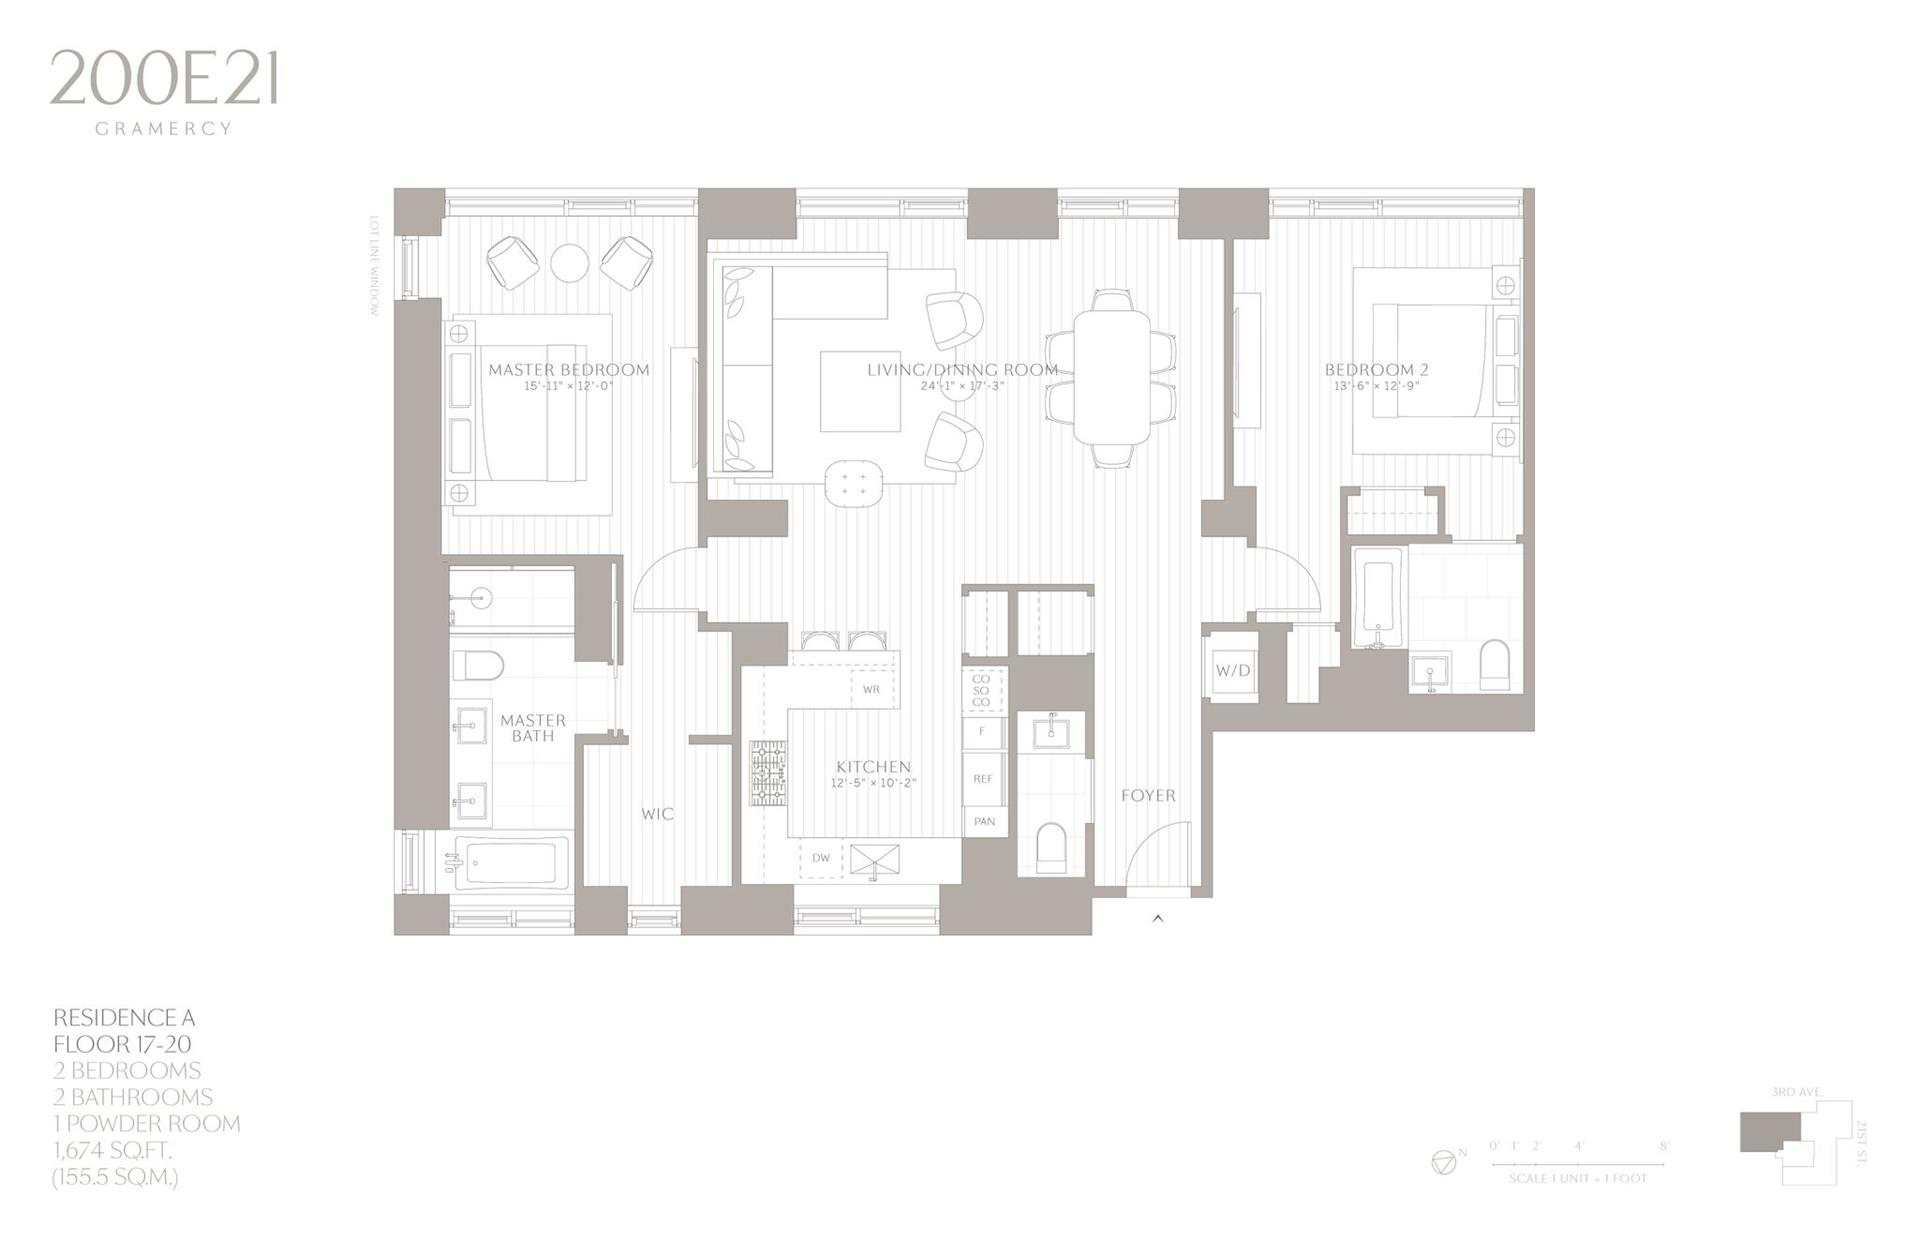 Floor plan of 200 East 21st Street, 19A - Gramercy - Union Square, New York